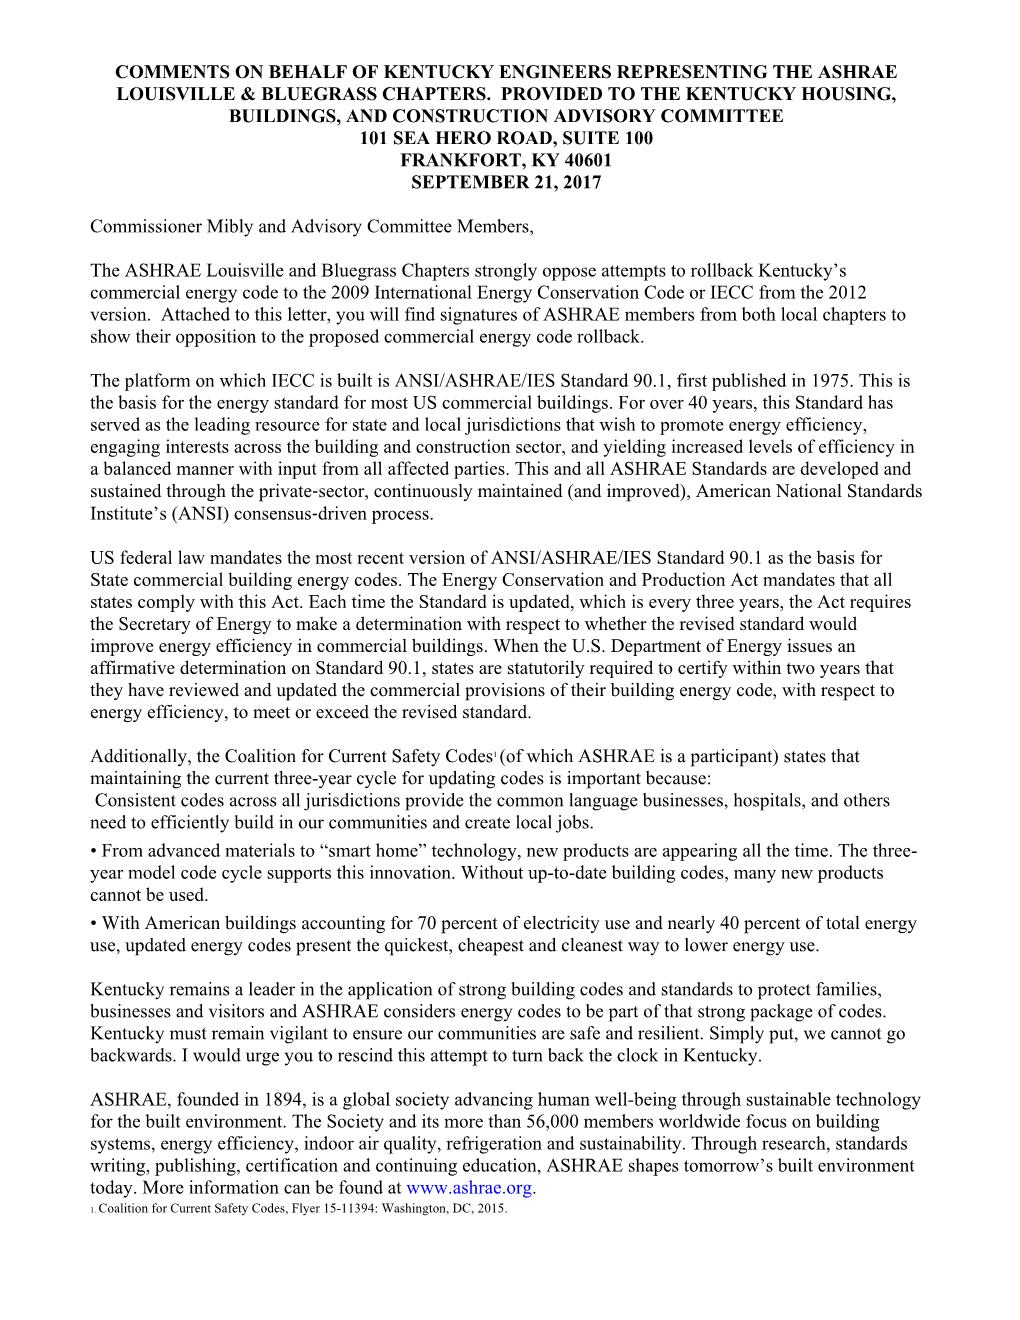 comment letter on 2012 iecc rollback from ky chapters